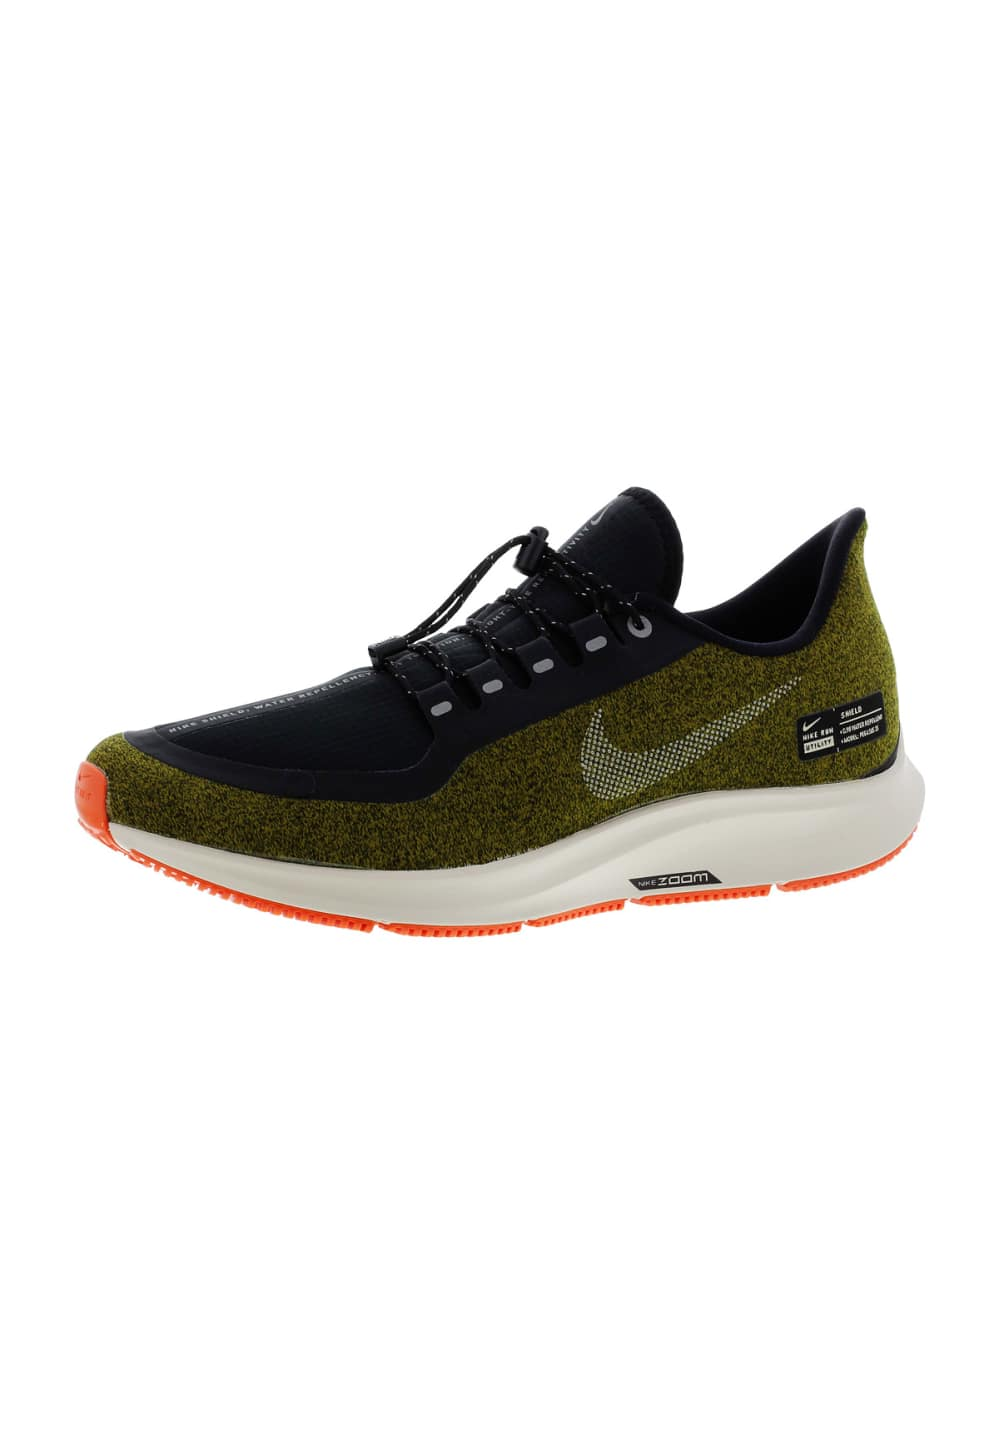 b4a60d9afe6 Next. -50%. This product is currently out of stock. Nike. Air Zoom Pegasus  35 Shield - Running shoes for Men